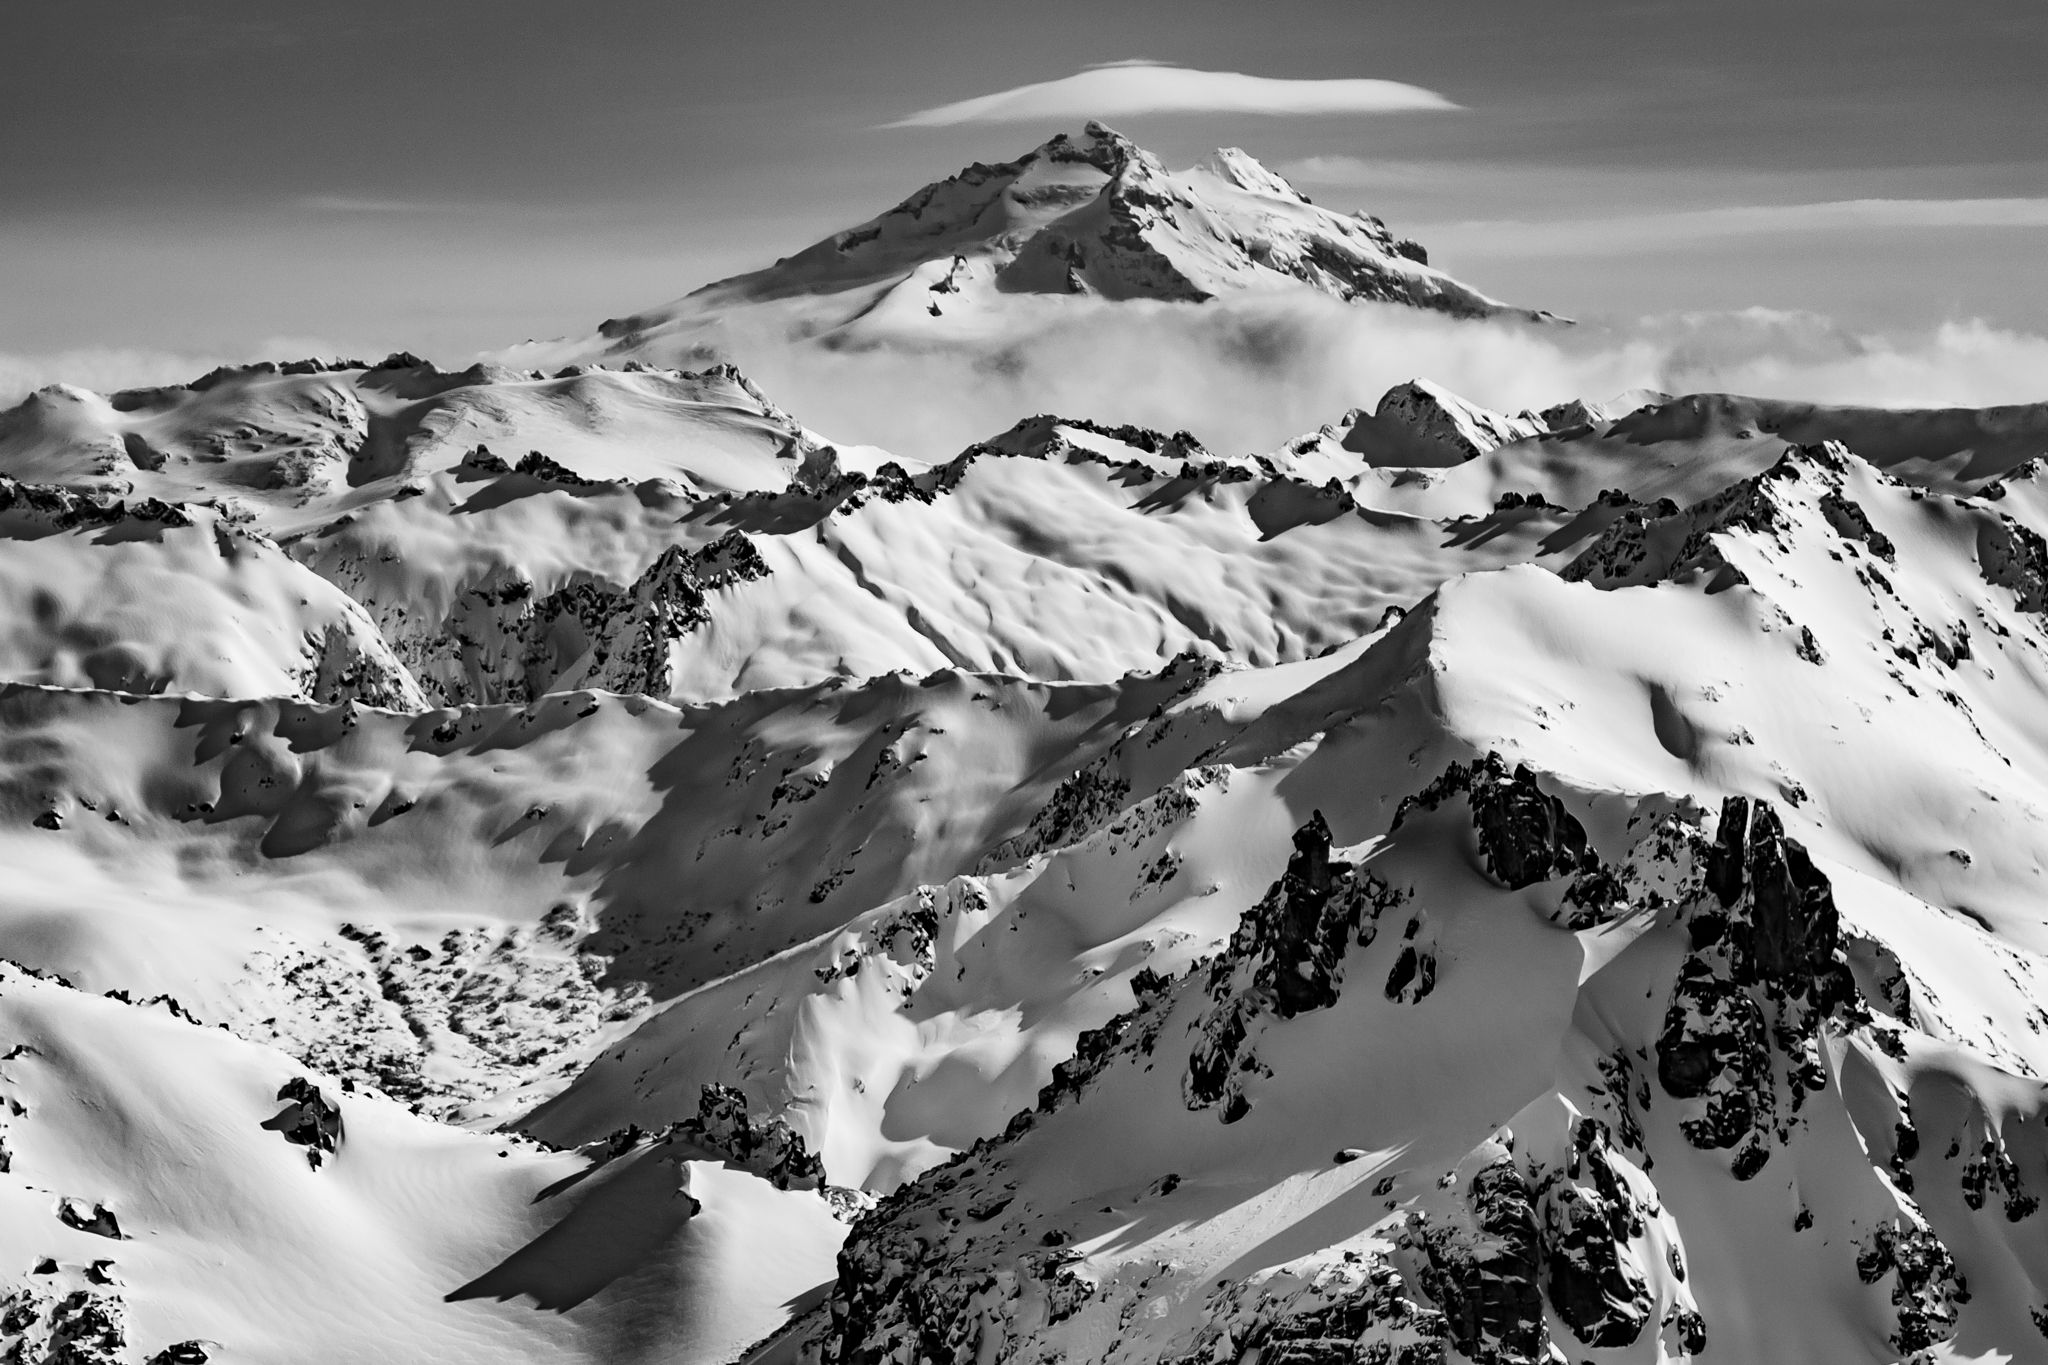 The andes landscape photographic art print black and white